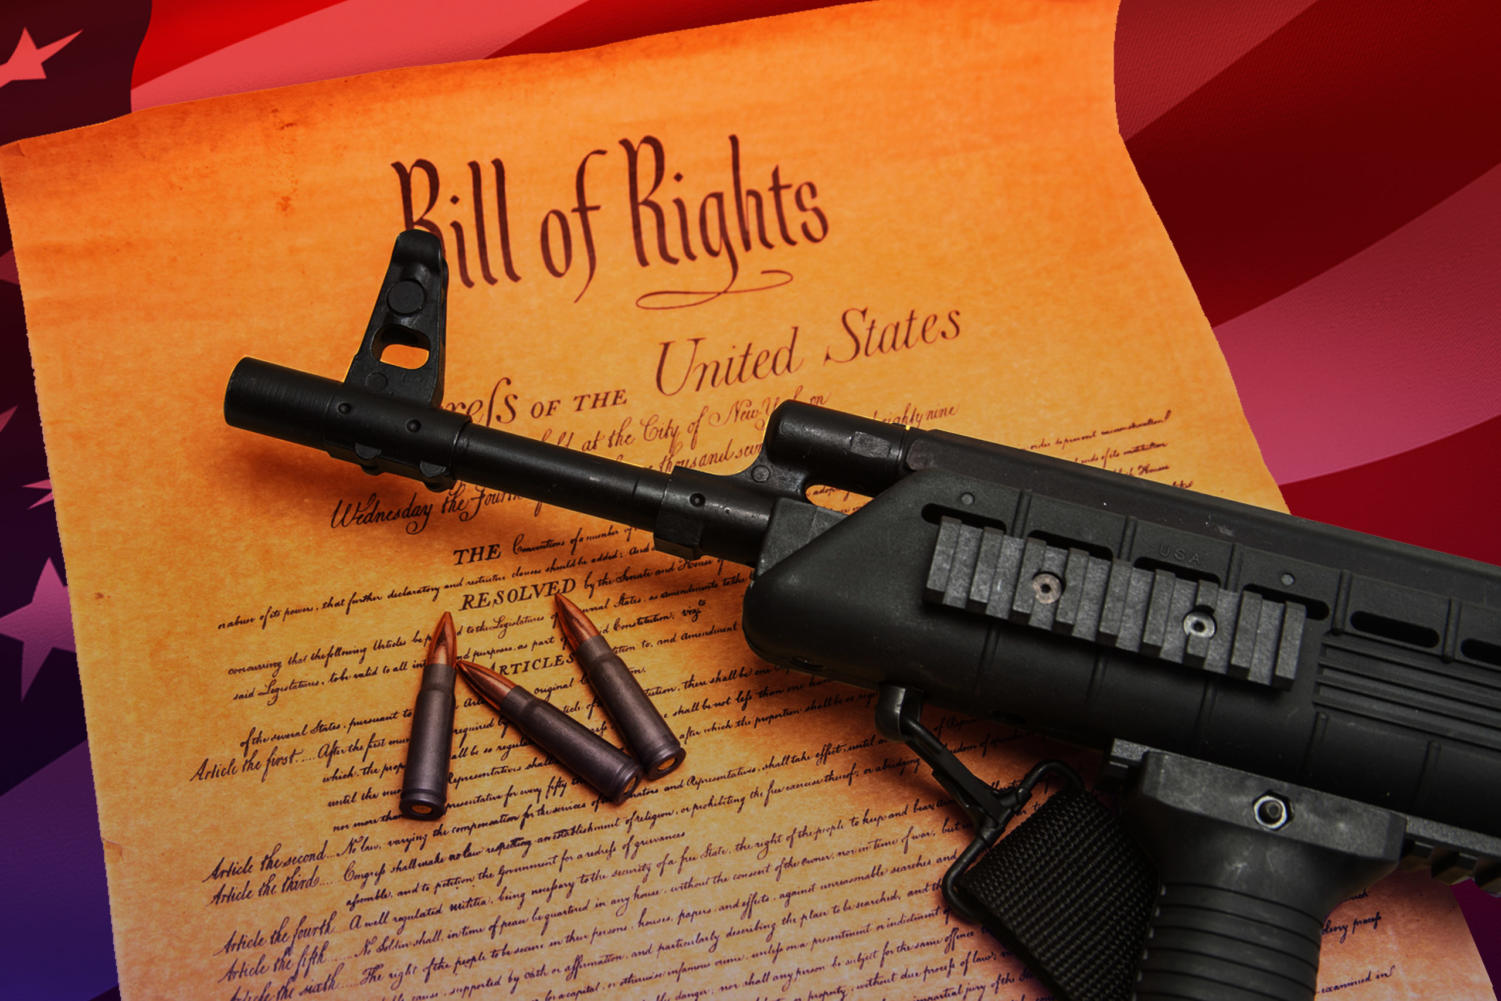 With the mounting controversy over gun control growing, what are we to do about it?